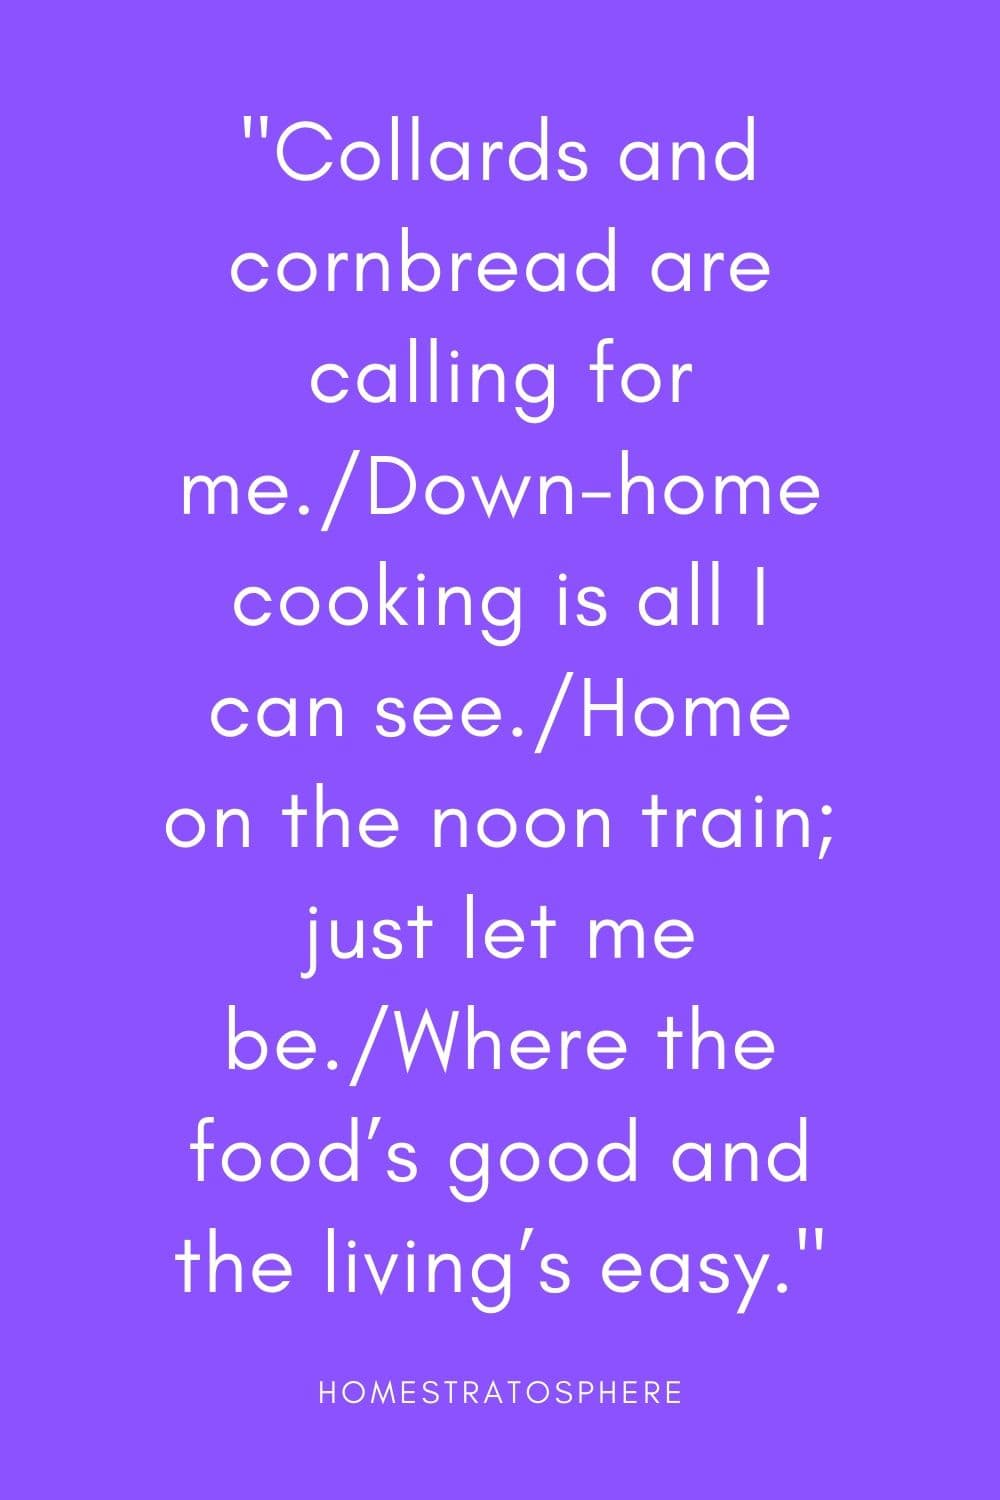 """Collards and cornbread are calling for me./Down-home cooking is all I can see./Home on the noon train; just let me be./Where the food's good and the living's easy."""